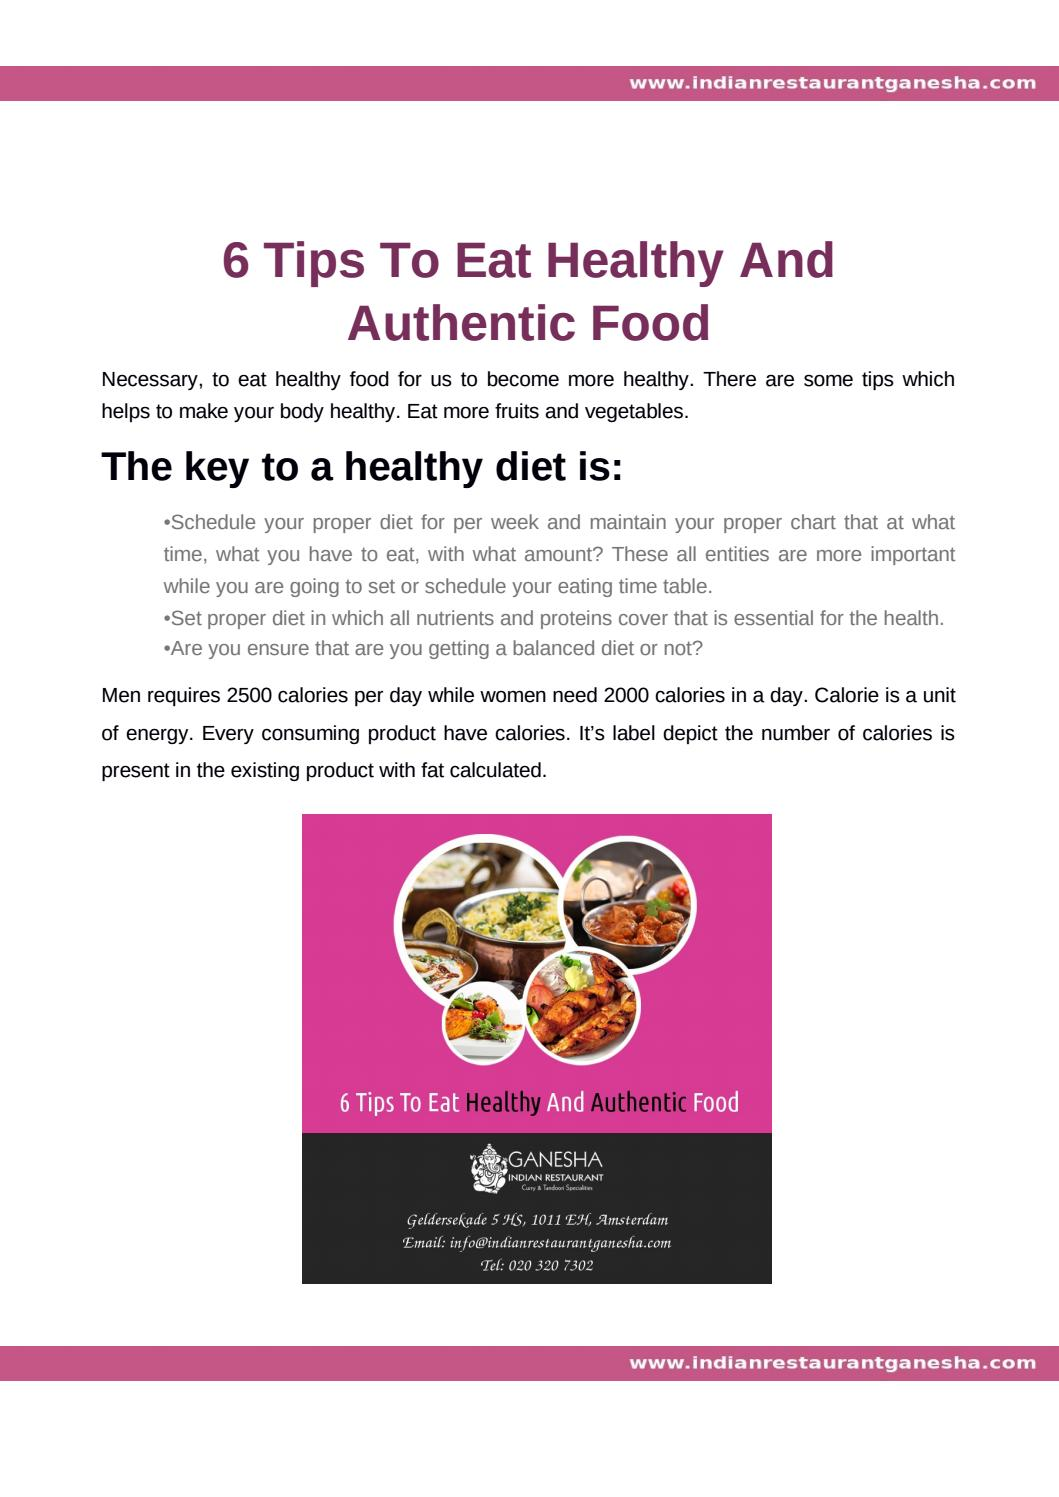 Important Tips For Balanced Diet